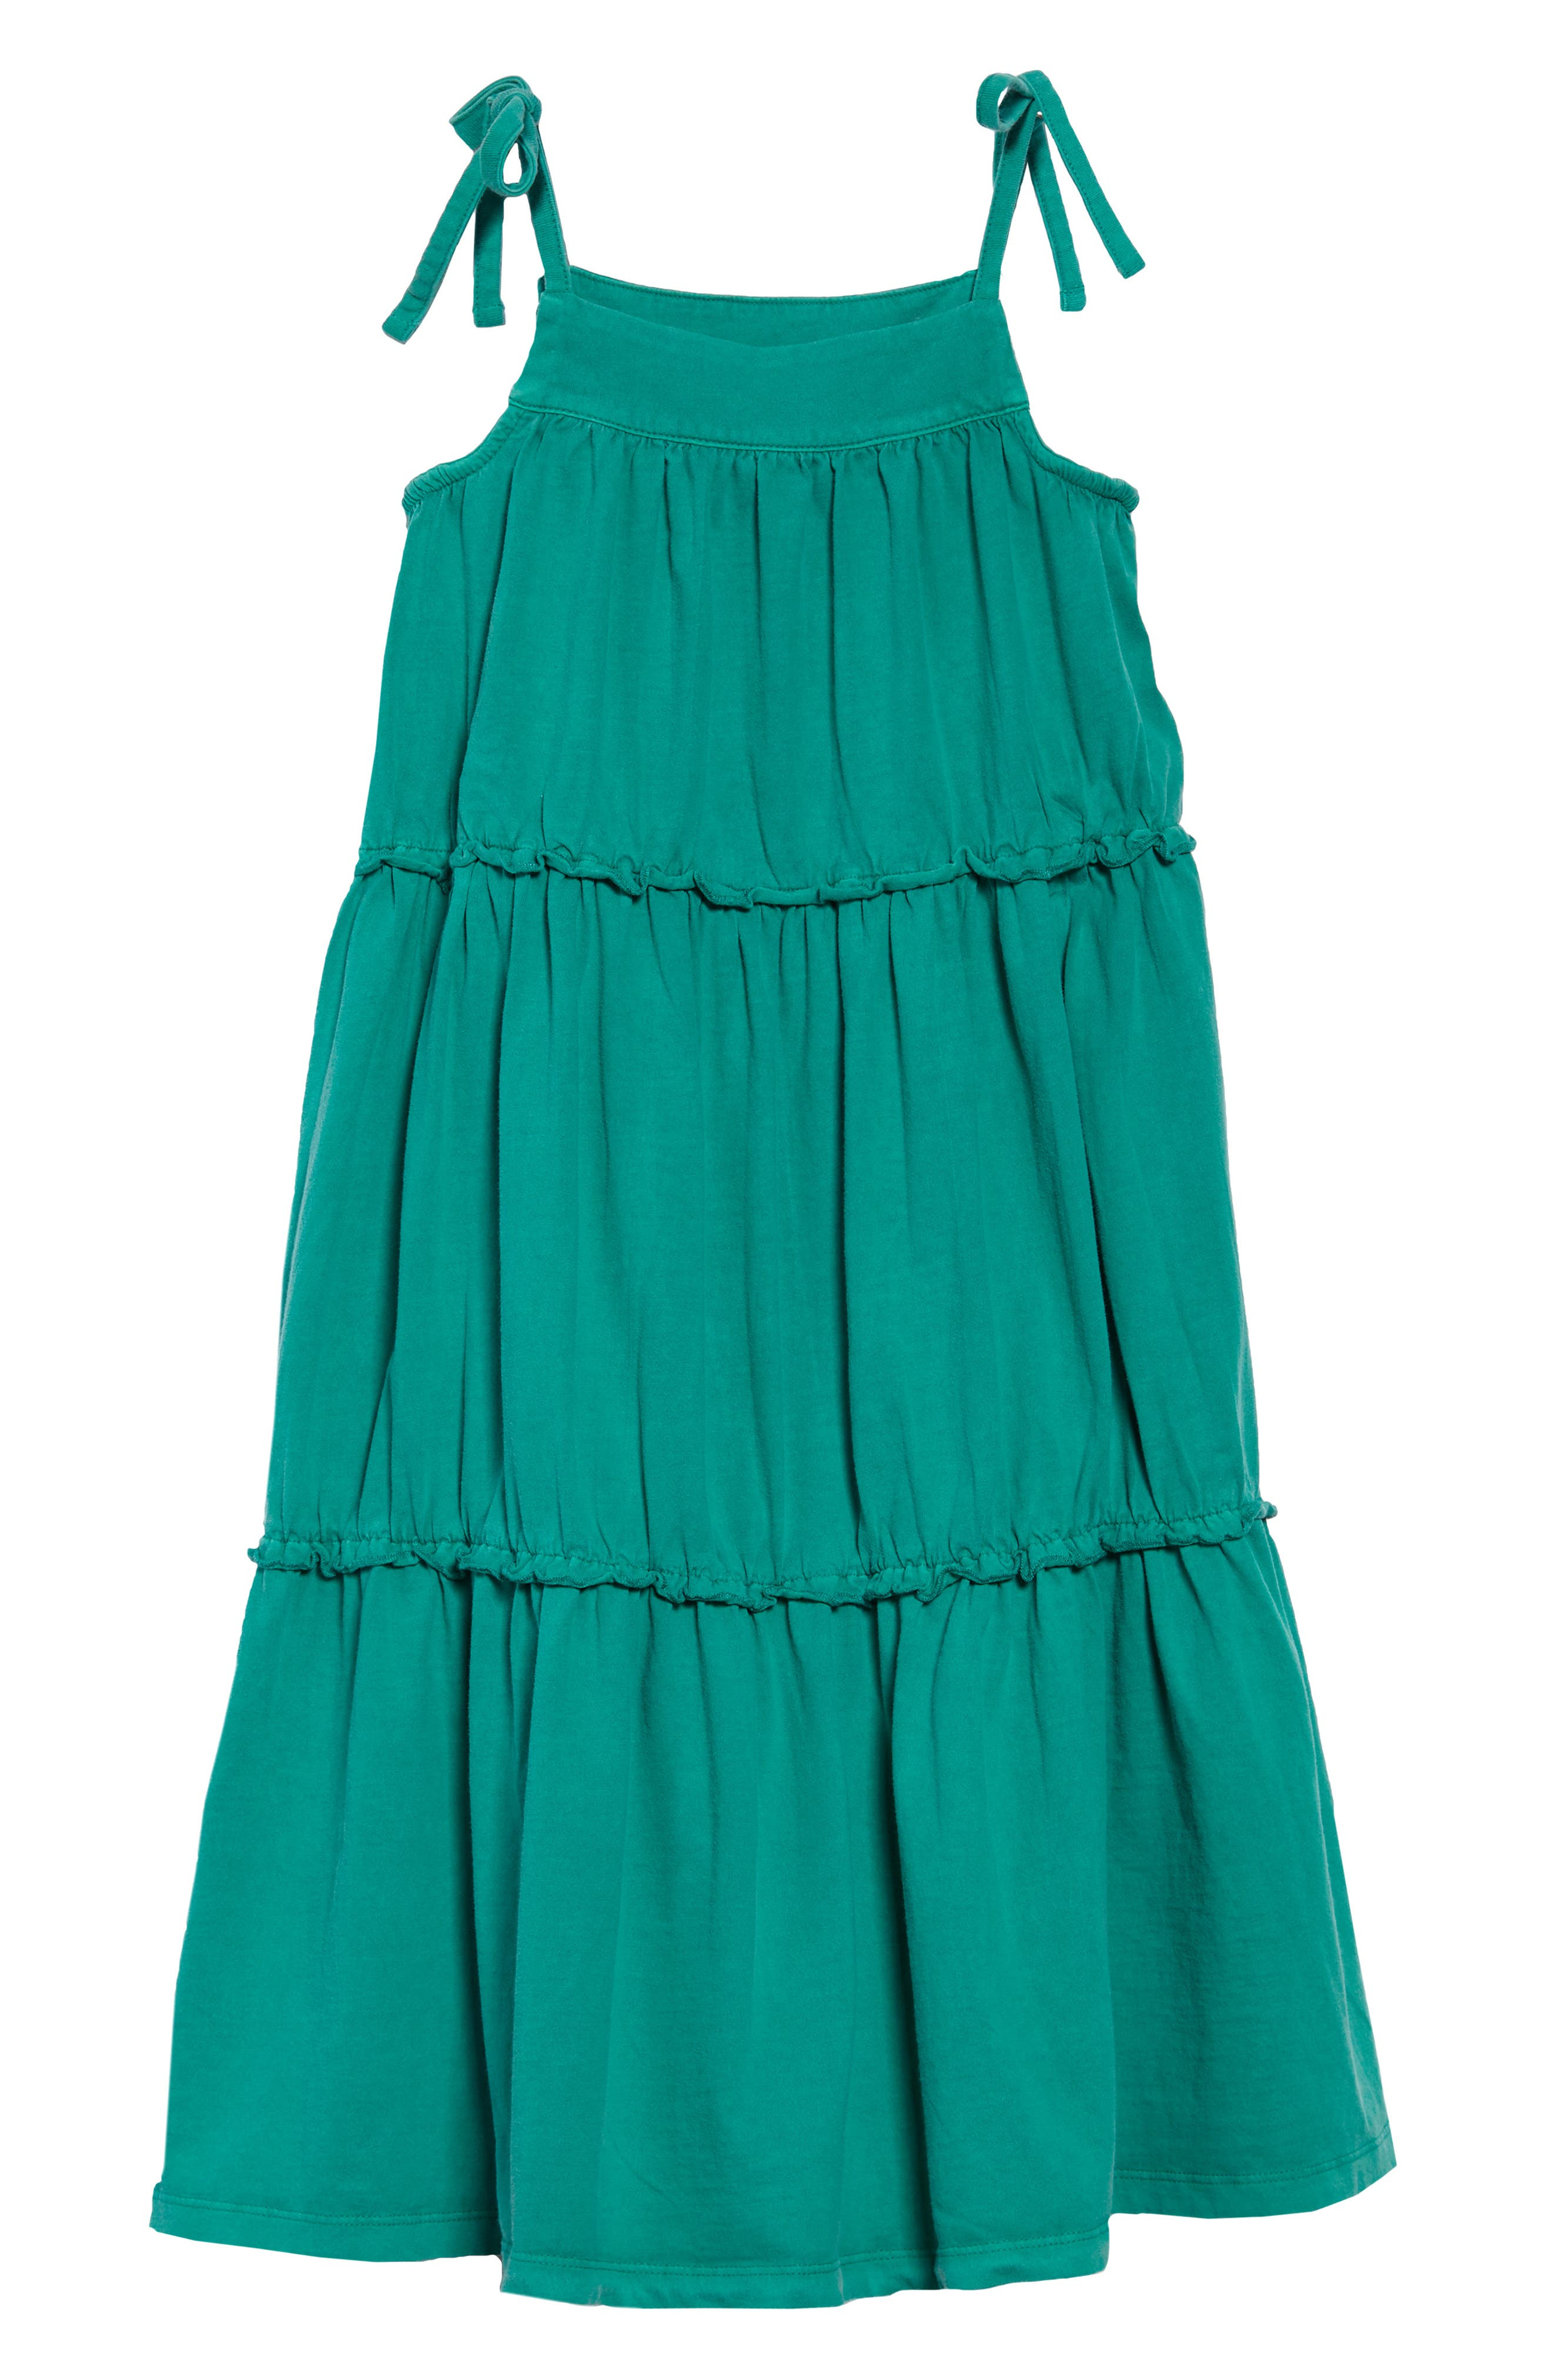 Tiered Sundress,                             Main thumbnail 1, color,                             Green Pop